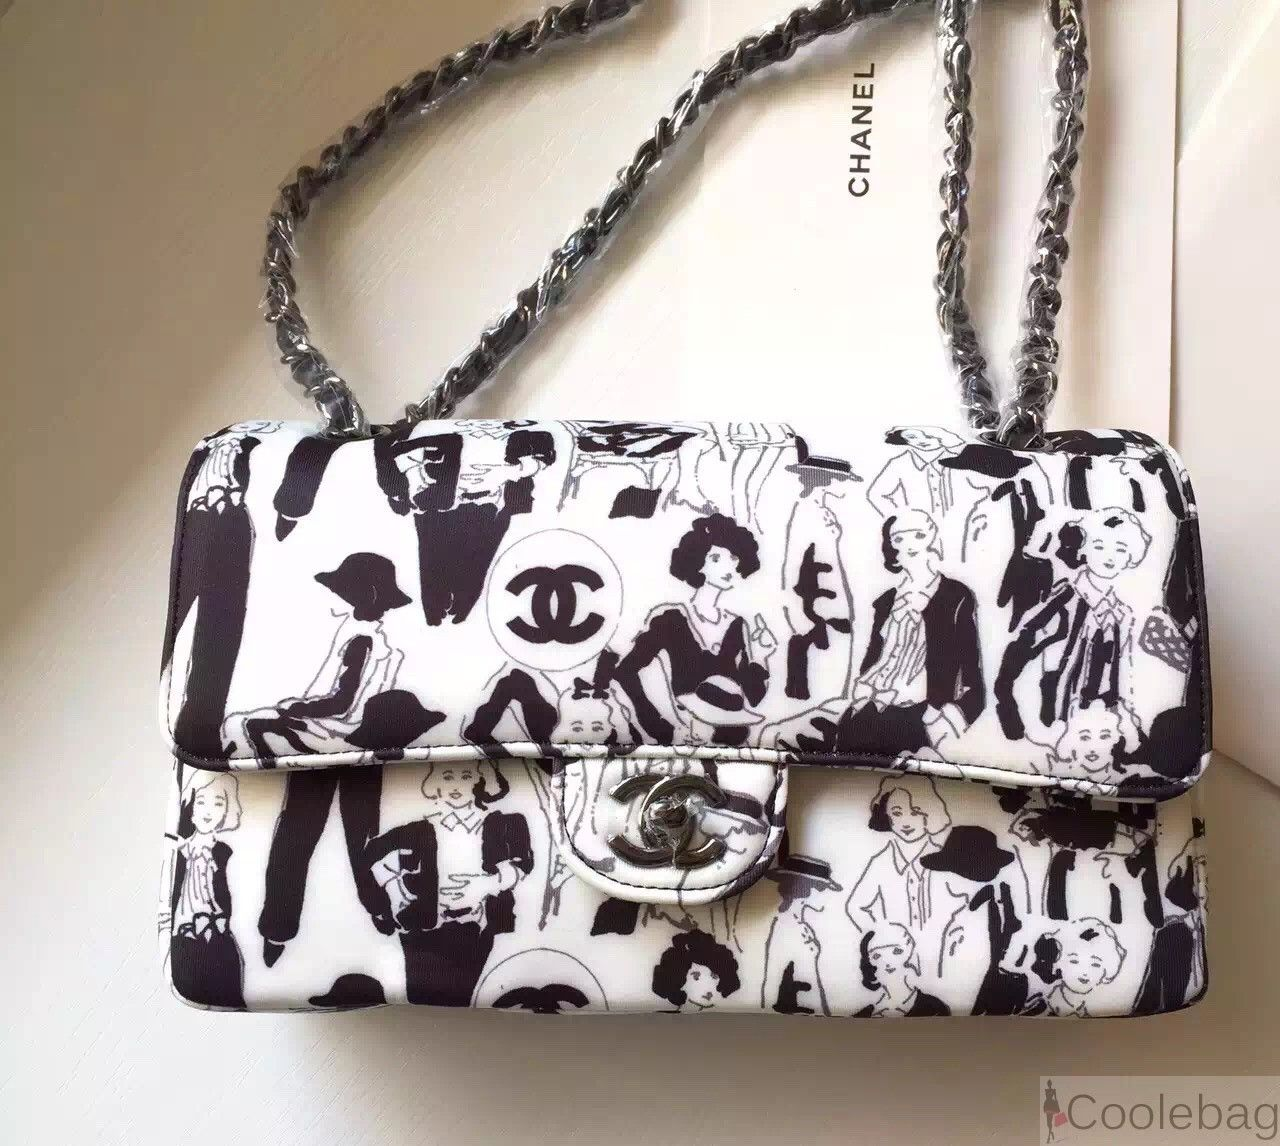 41737cdff31e Chanel Limited Edition Karl Lagerfeld Sketches Classic Flap bag ...